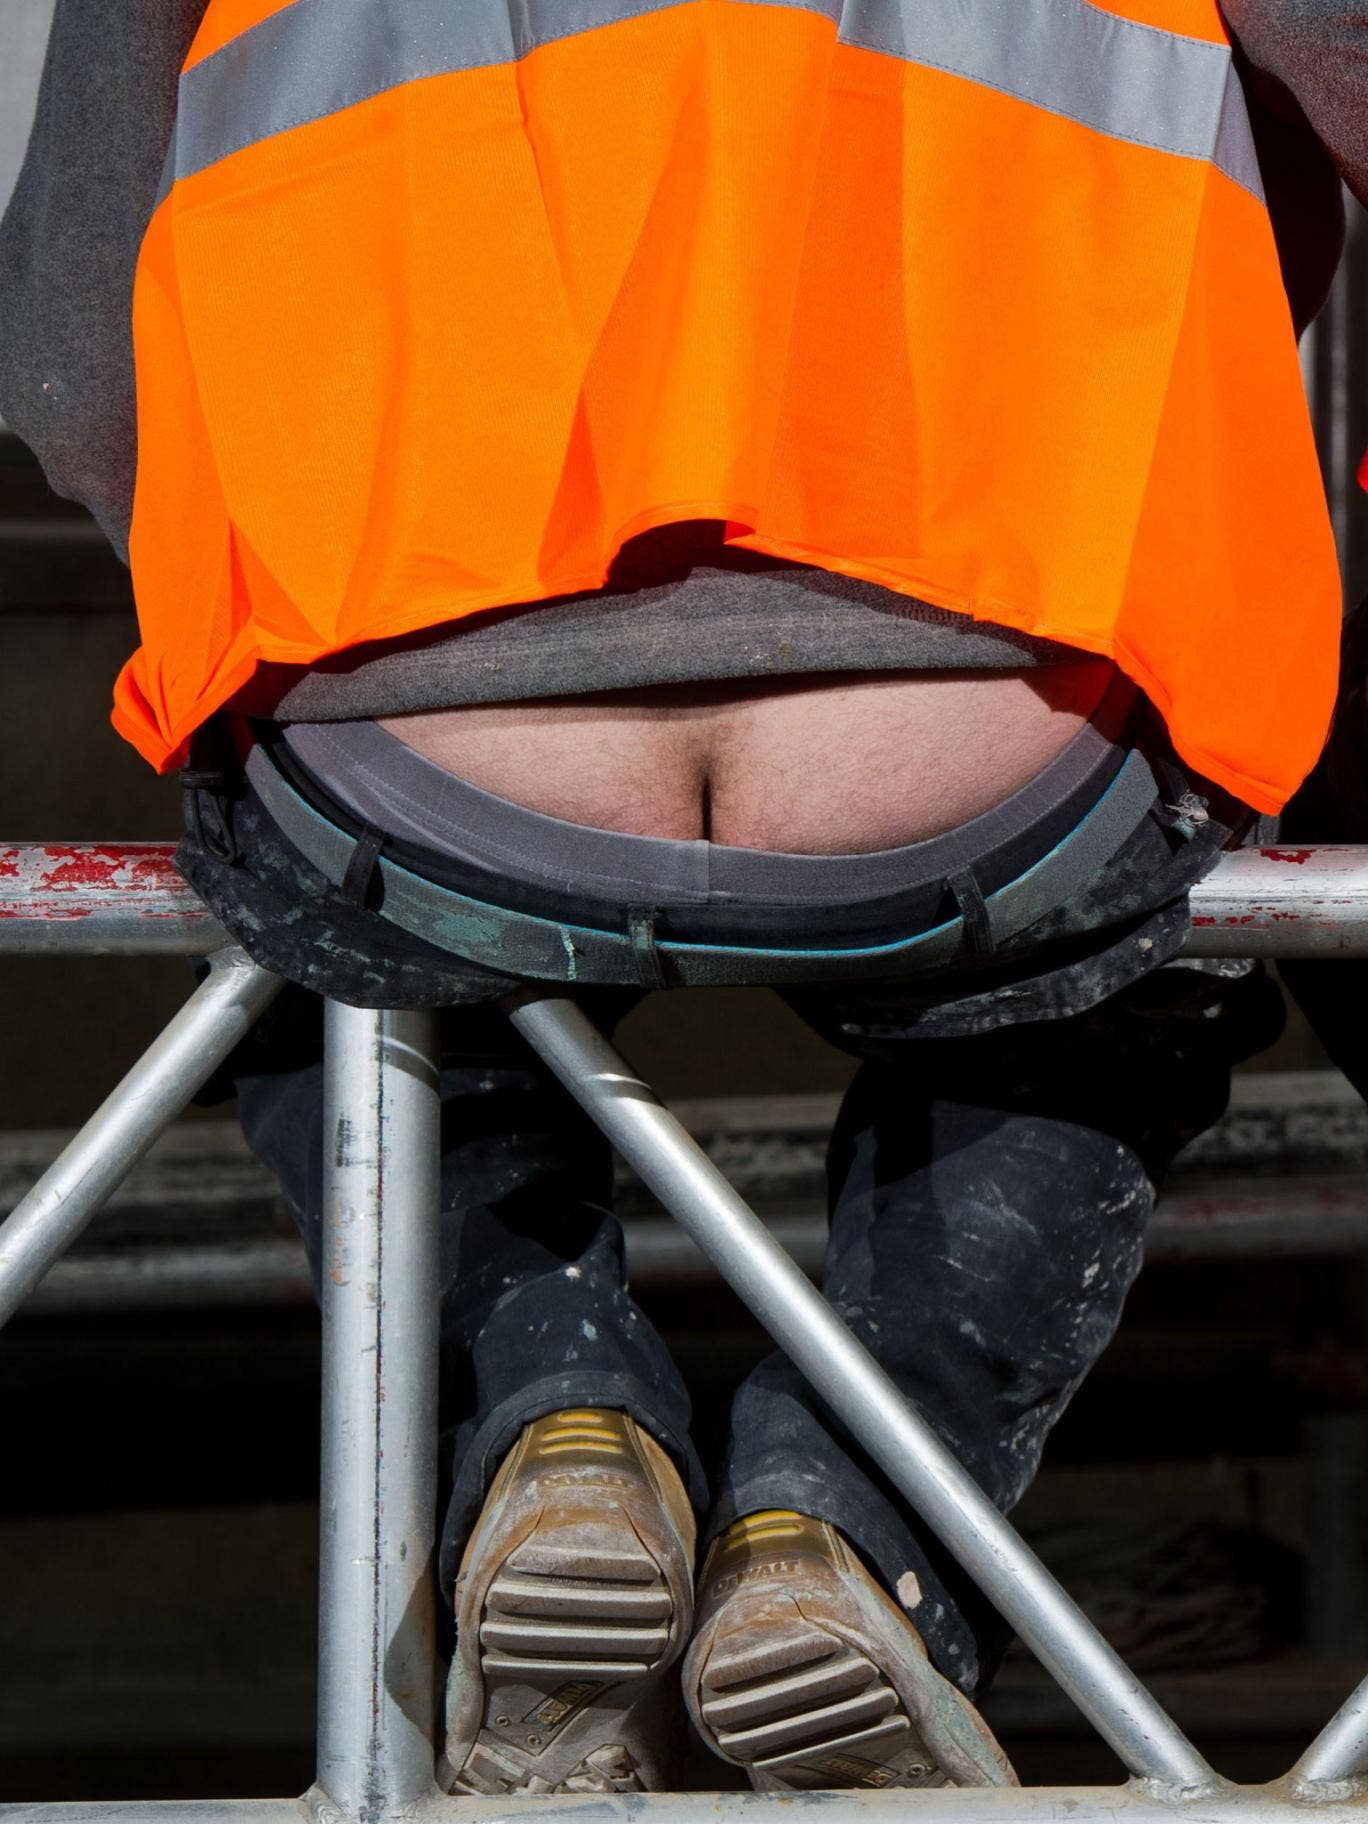 Public health minister Jane Ellison will be urging construction workers to 'get into shape'